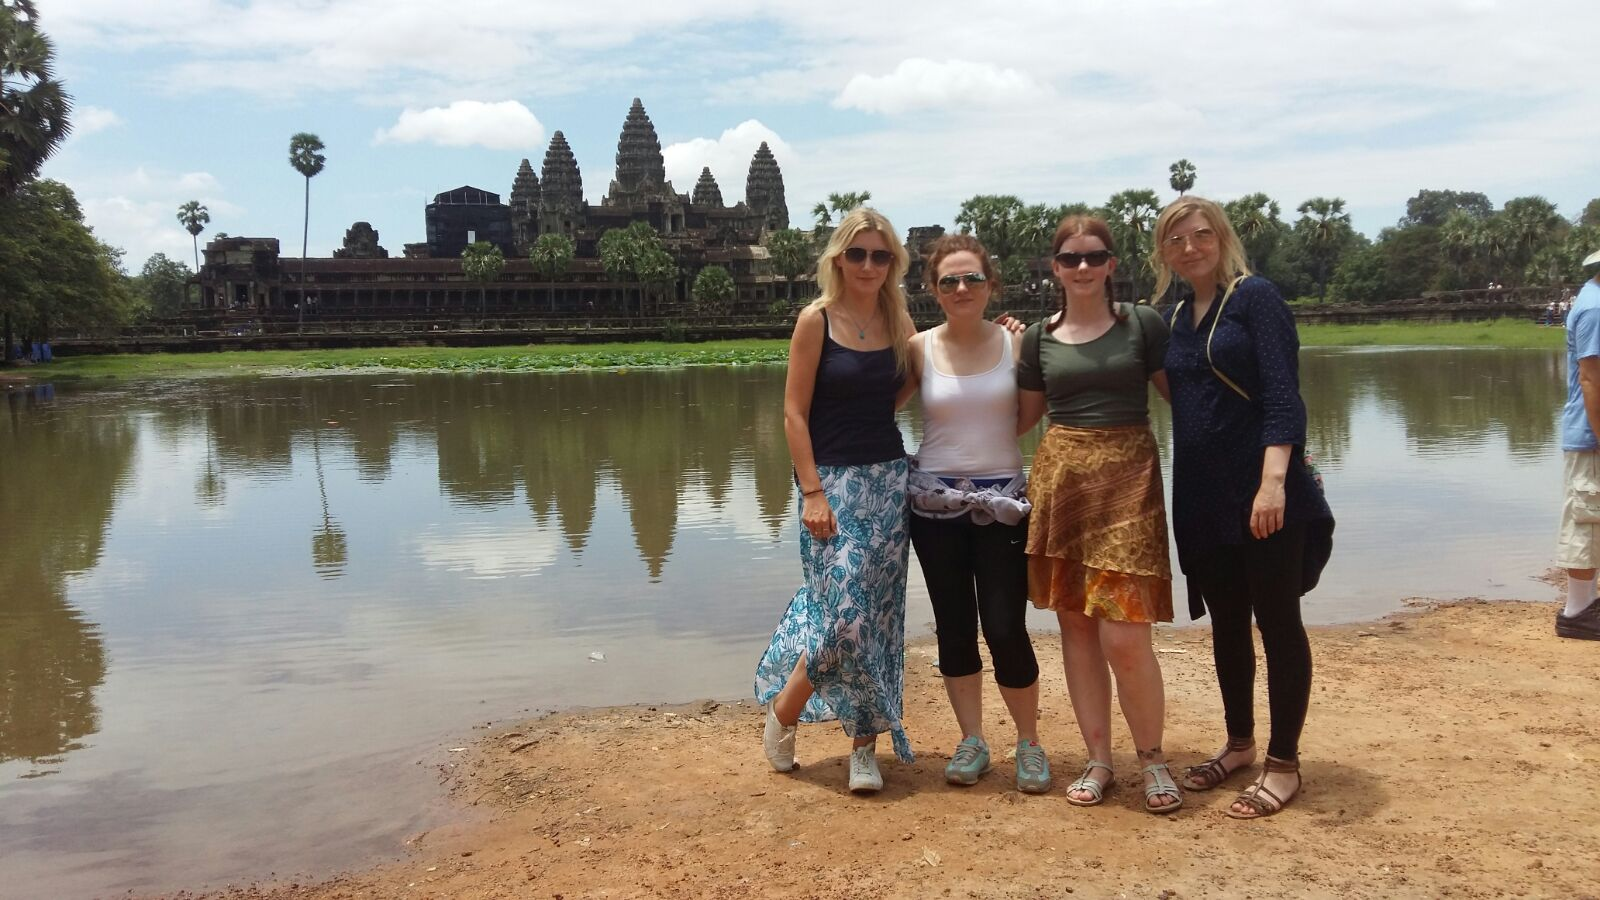 A group of i-to-i interns at the ancient Angkor Wat temple complex in Siem Reap, Cambodia